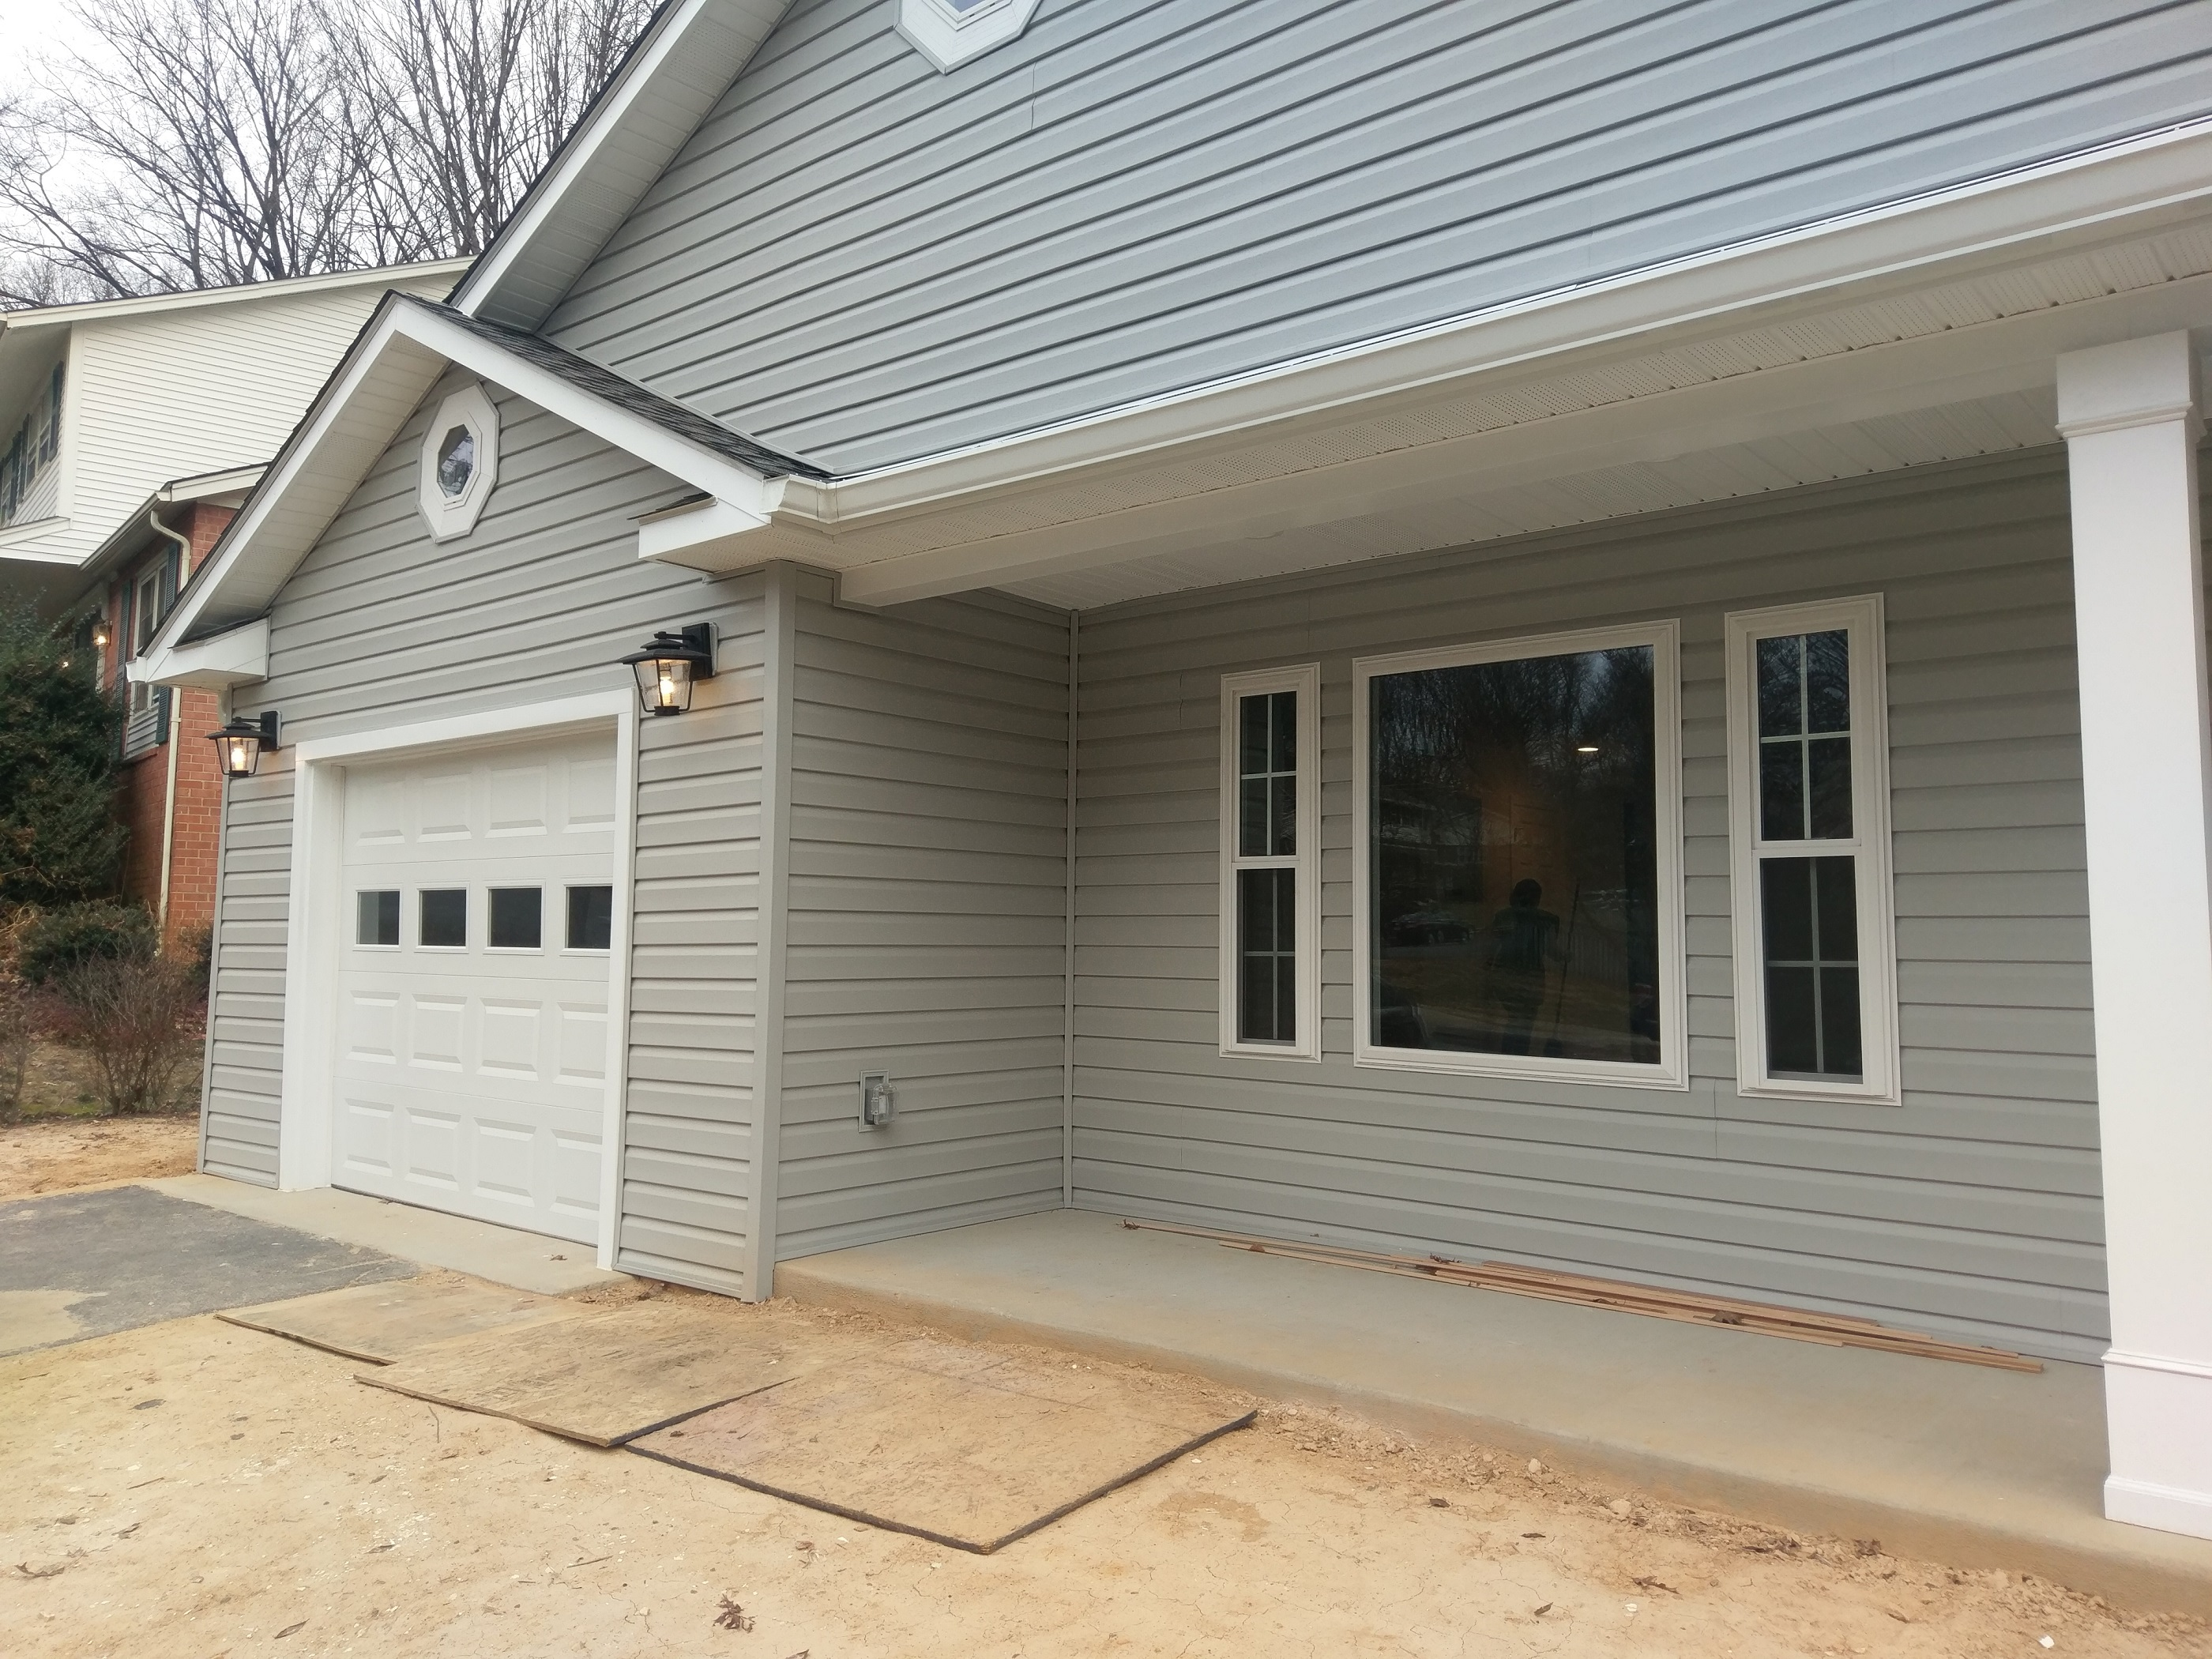 Home Addition Contractor in Centreville, Virginia